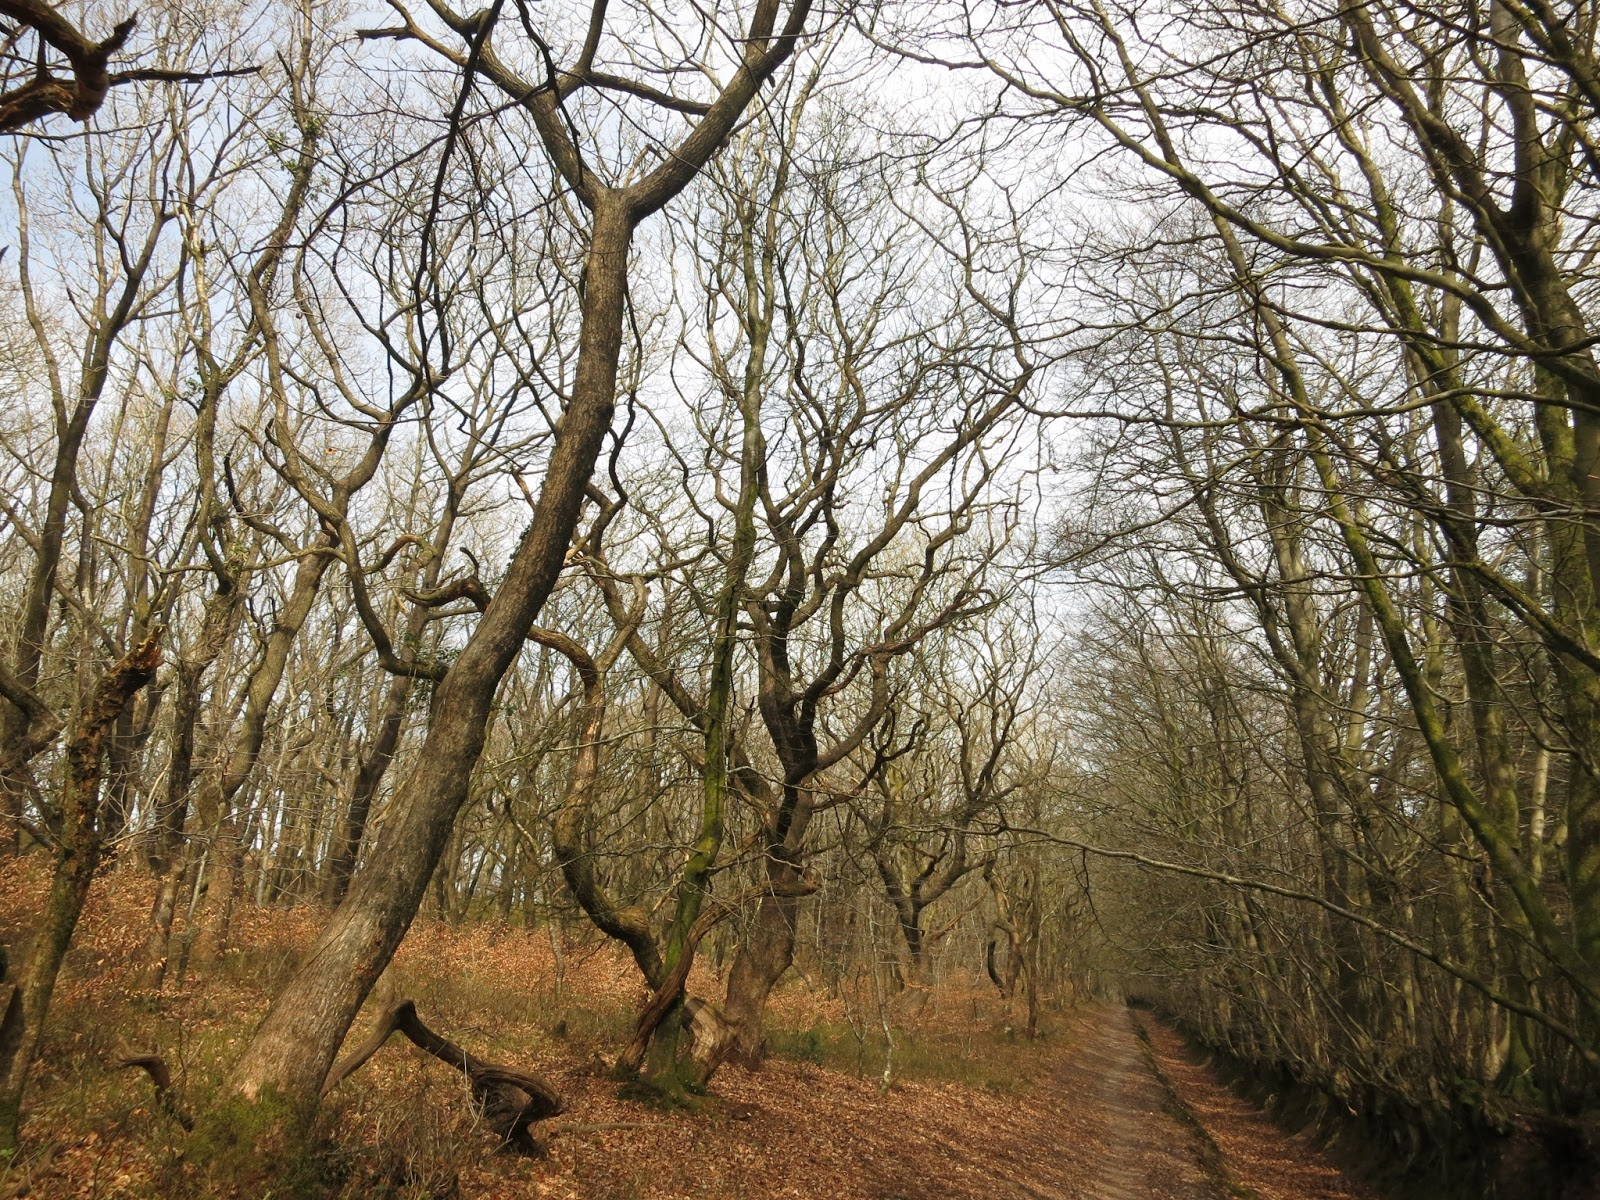 Beech lined path on Quantock Ridgeway. Trees bare because it's April.